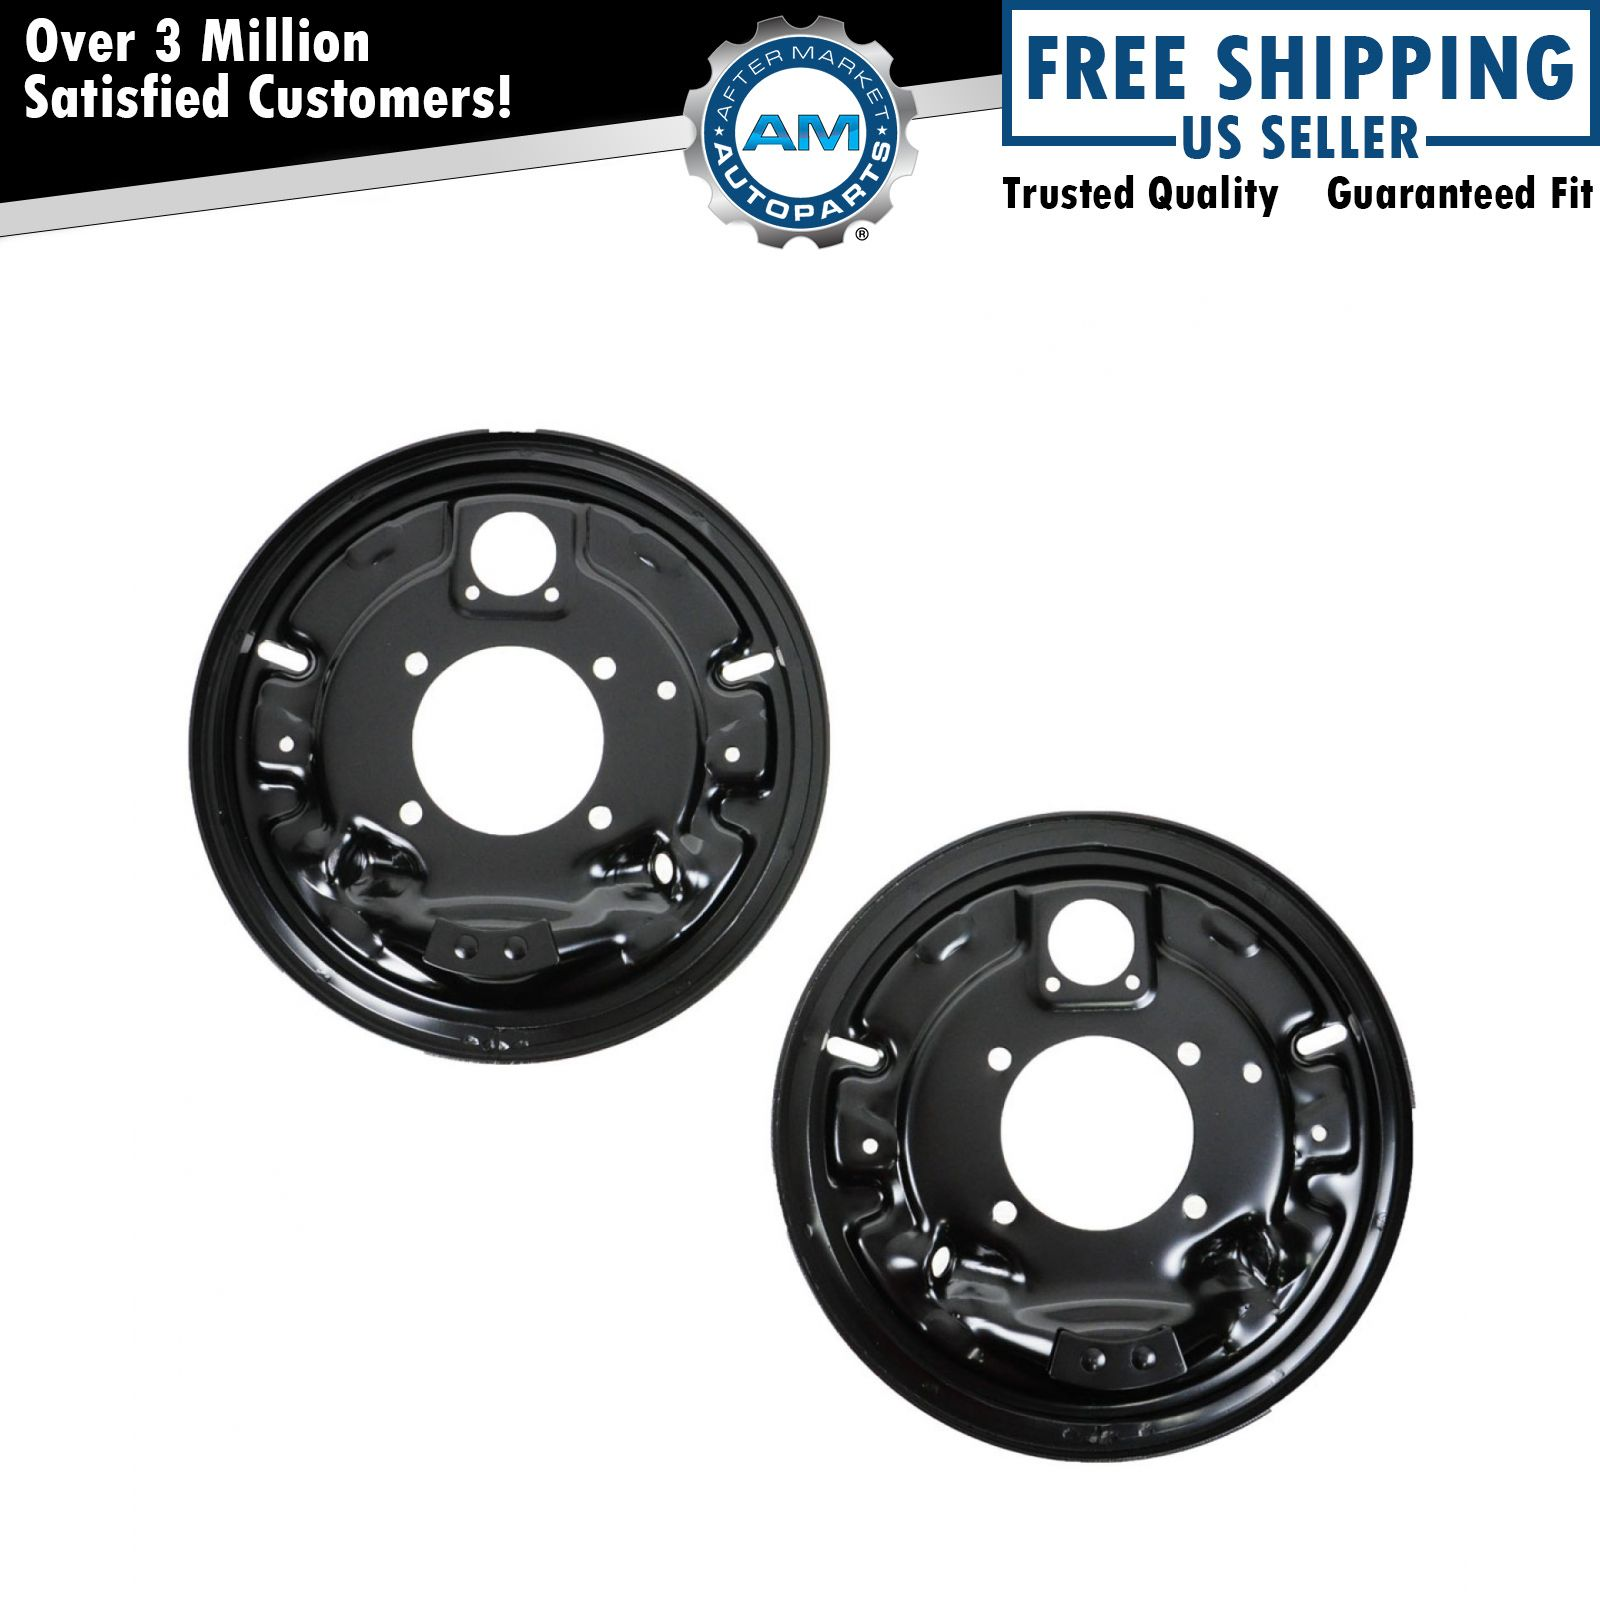 Dorman Rear Brake Backing Plates Pair For Chevy C K Pickup